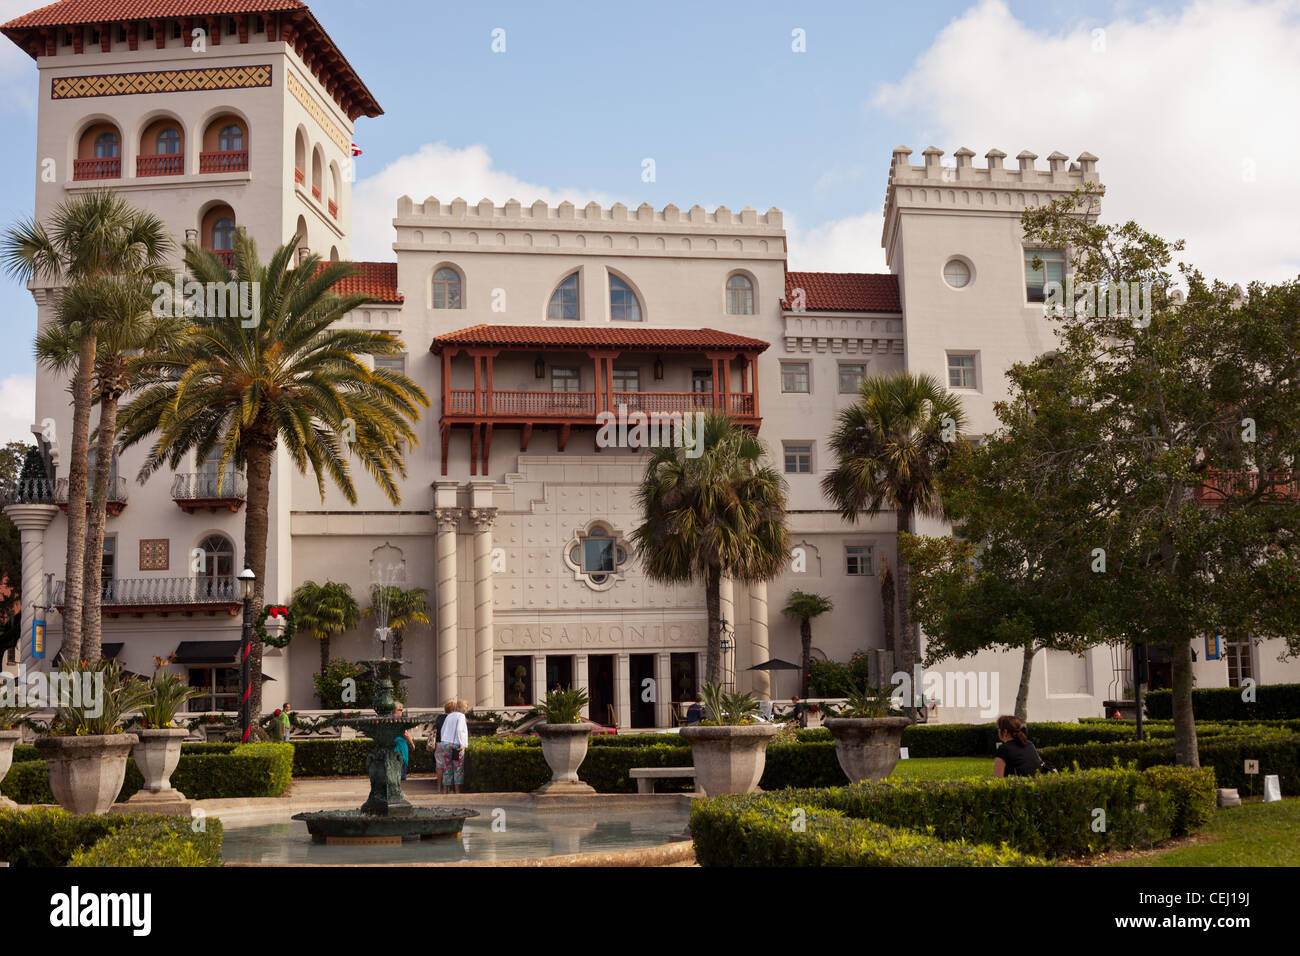 Casa monica hotel st augustine florida usa spanish for Style hotel